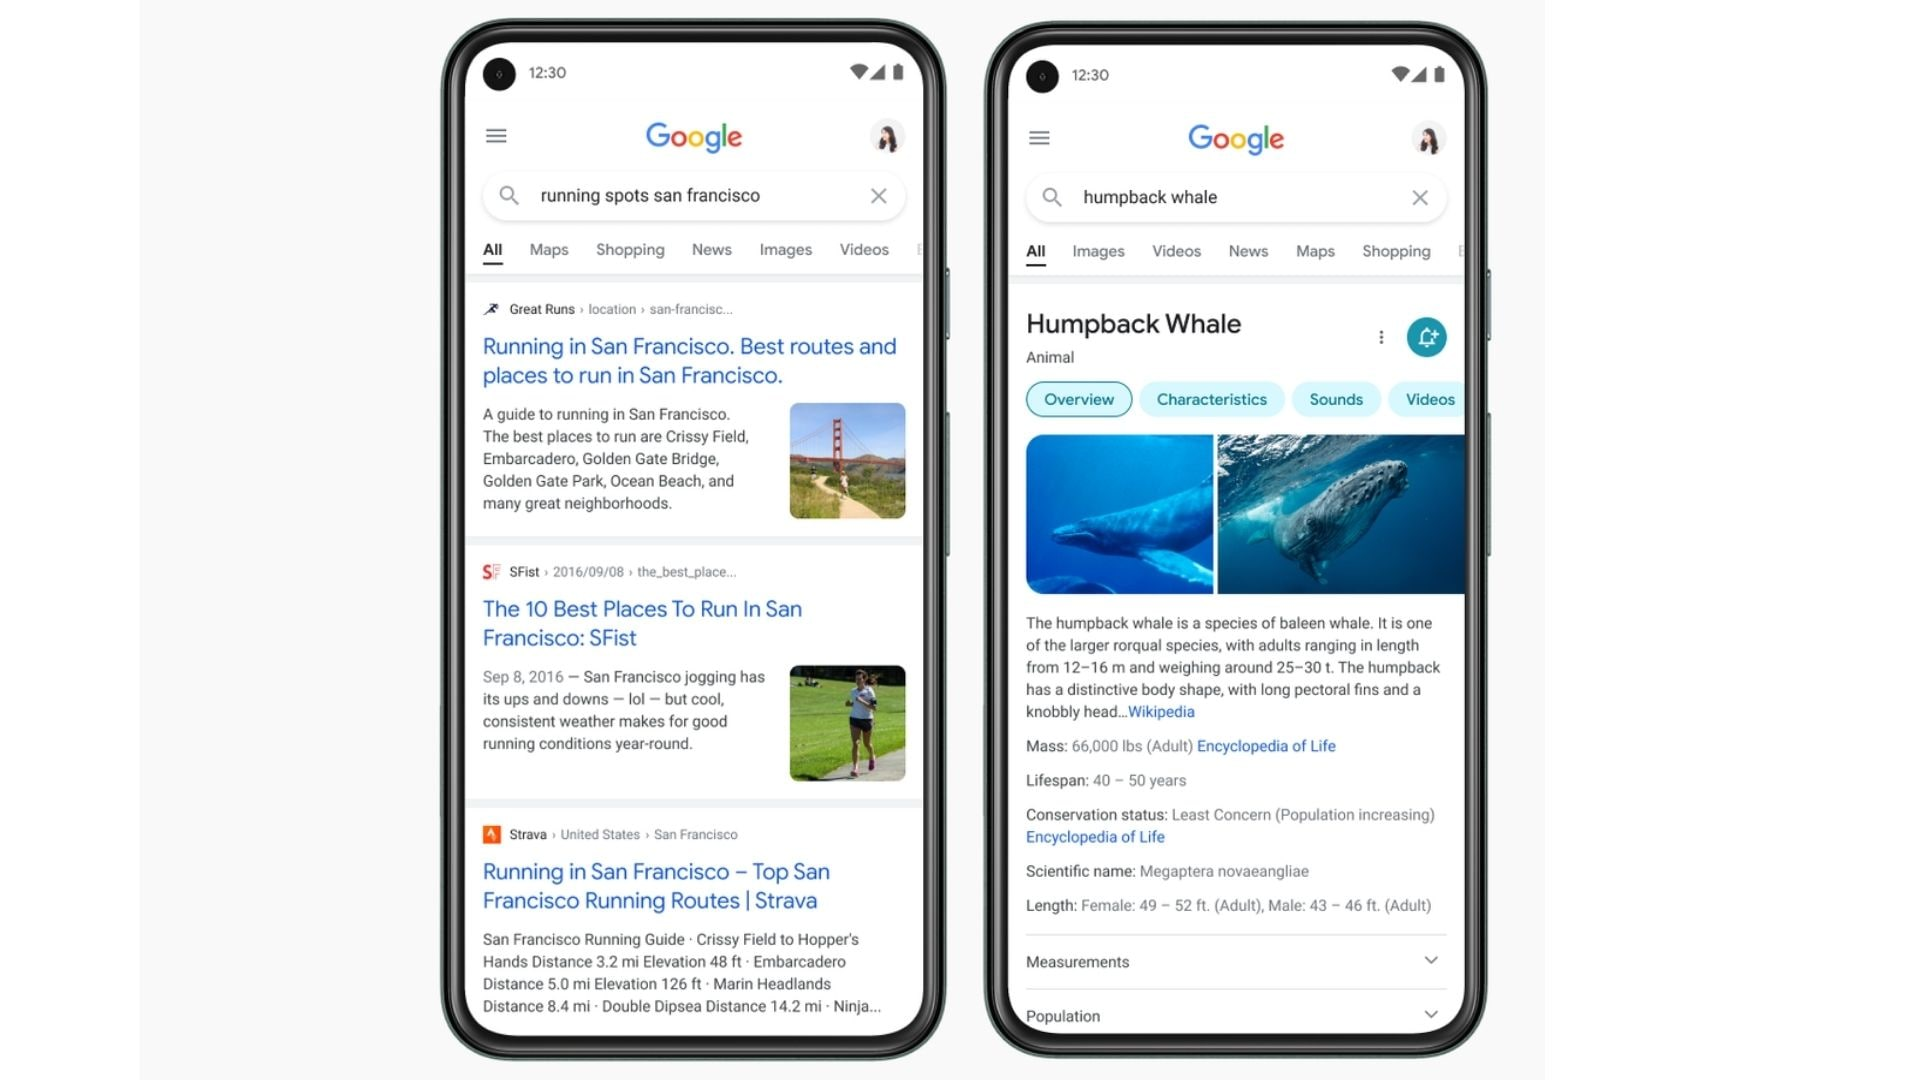 The new Google Search update